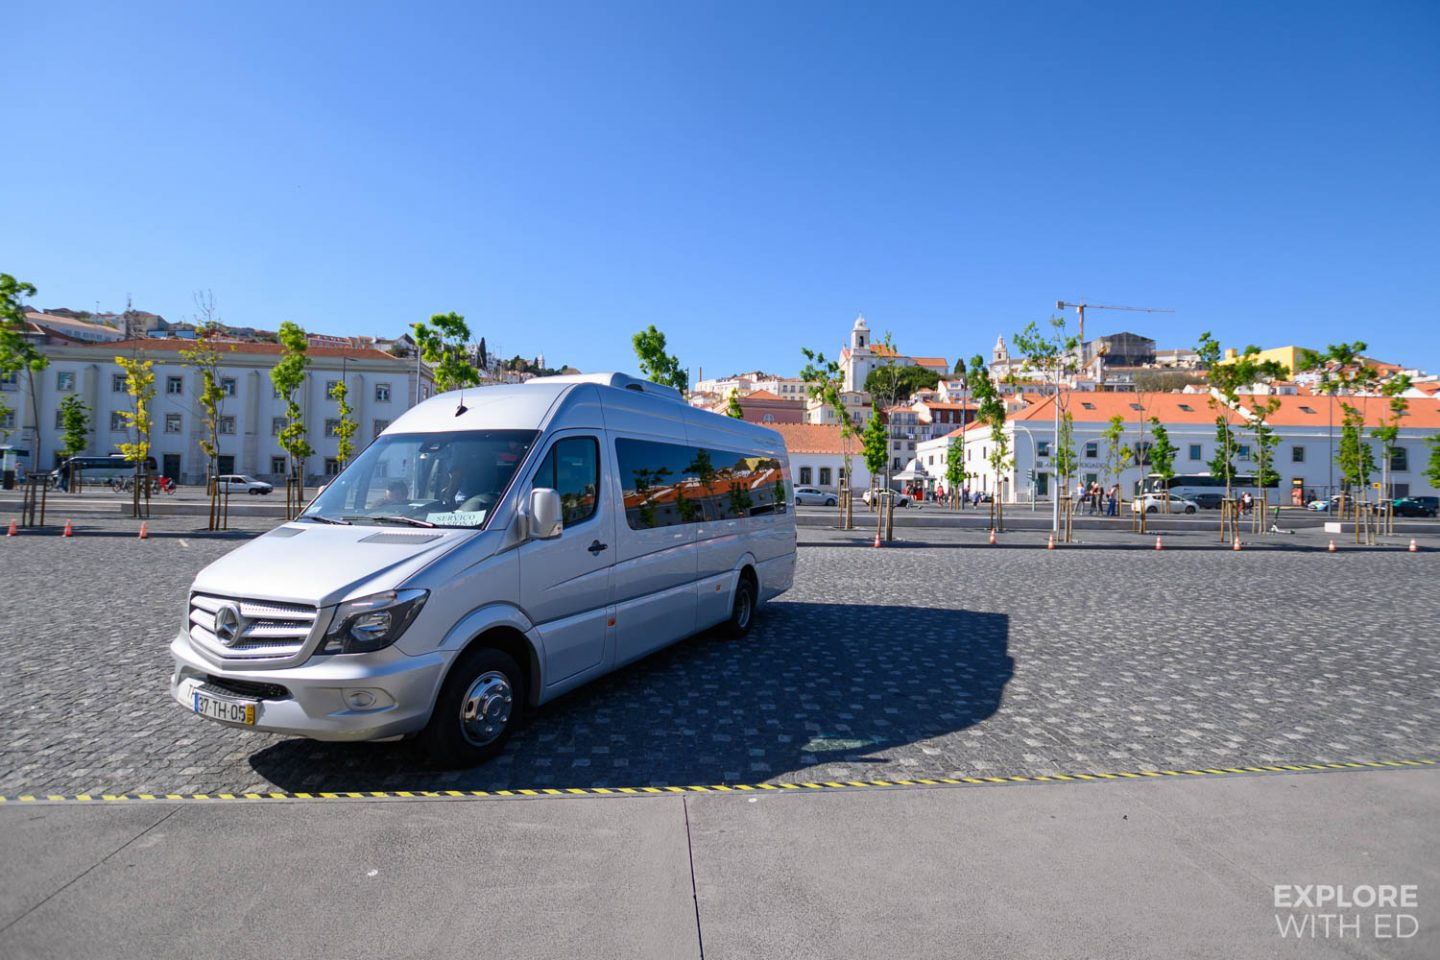 Transfer bus to Fatima from Lisbon cruise port